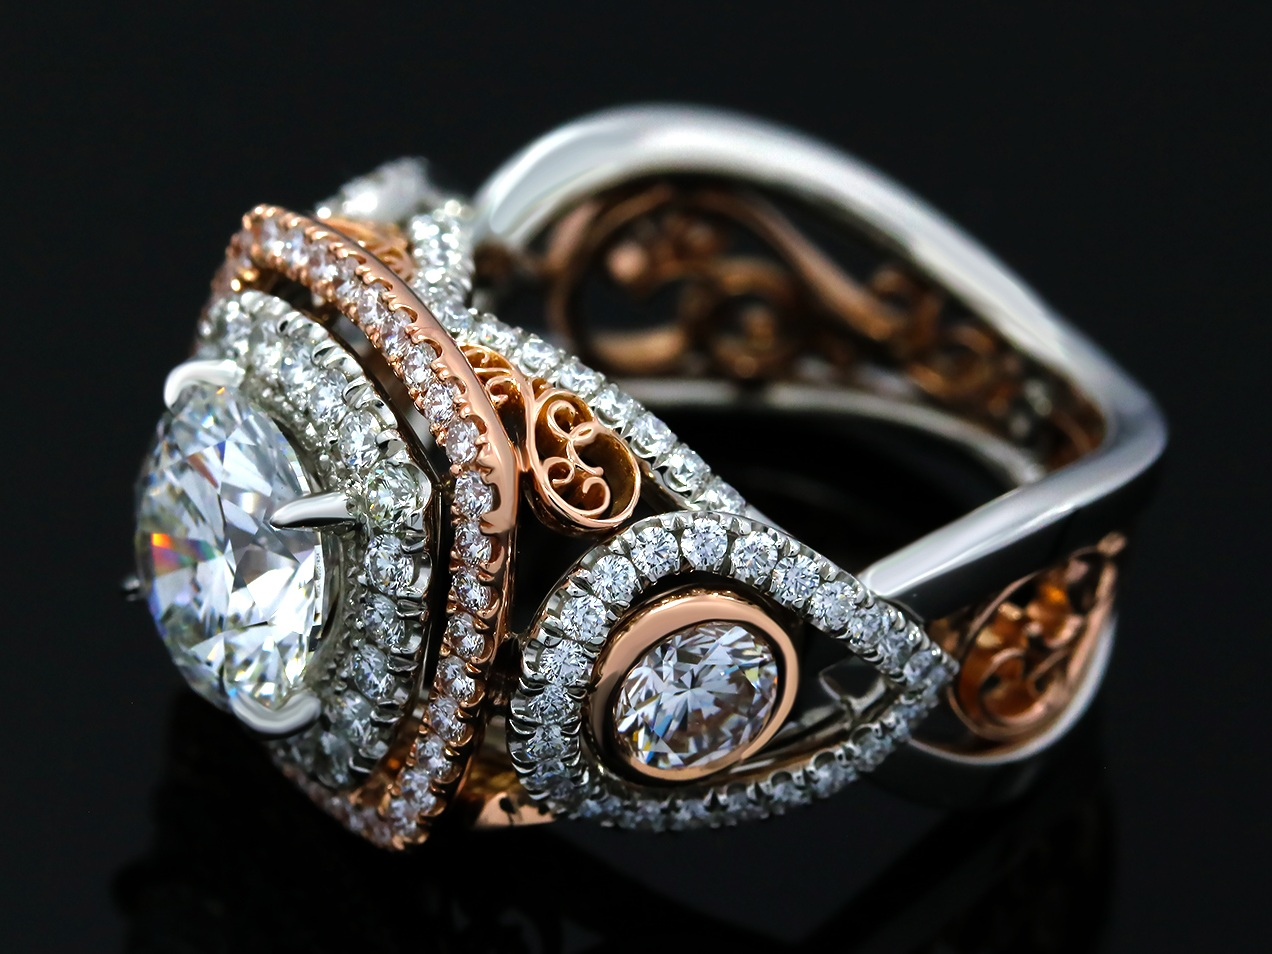 Jewelry Design - The jewelry one wears is one of the boldest expressions of their personality